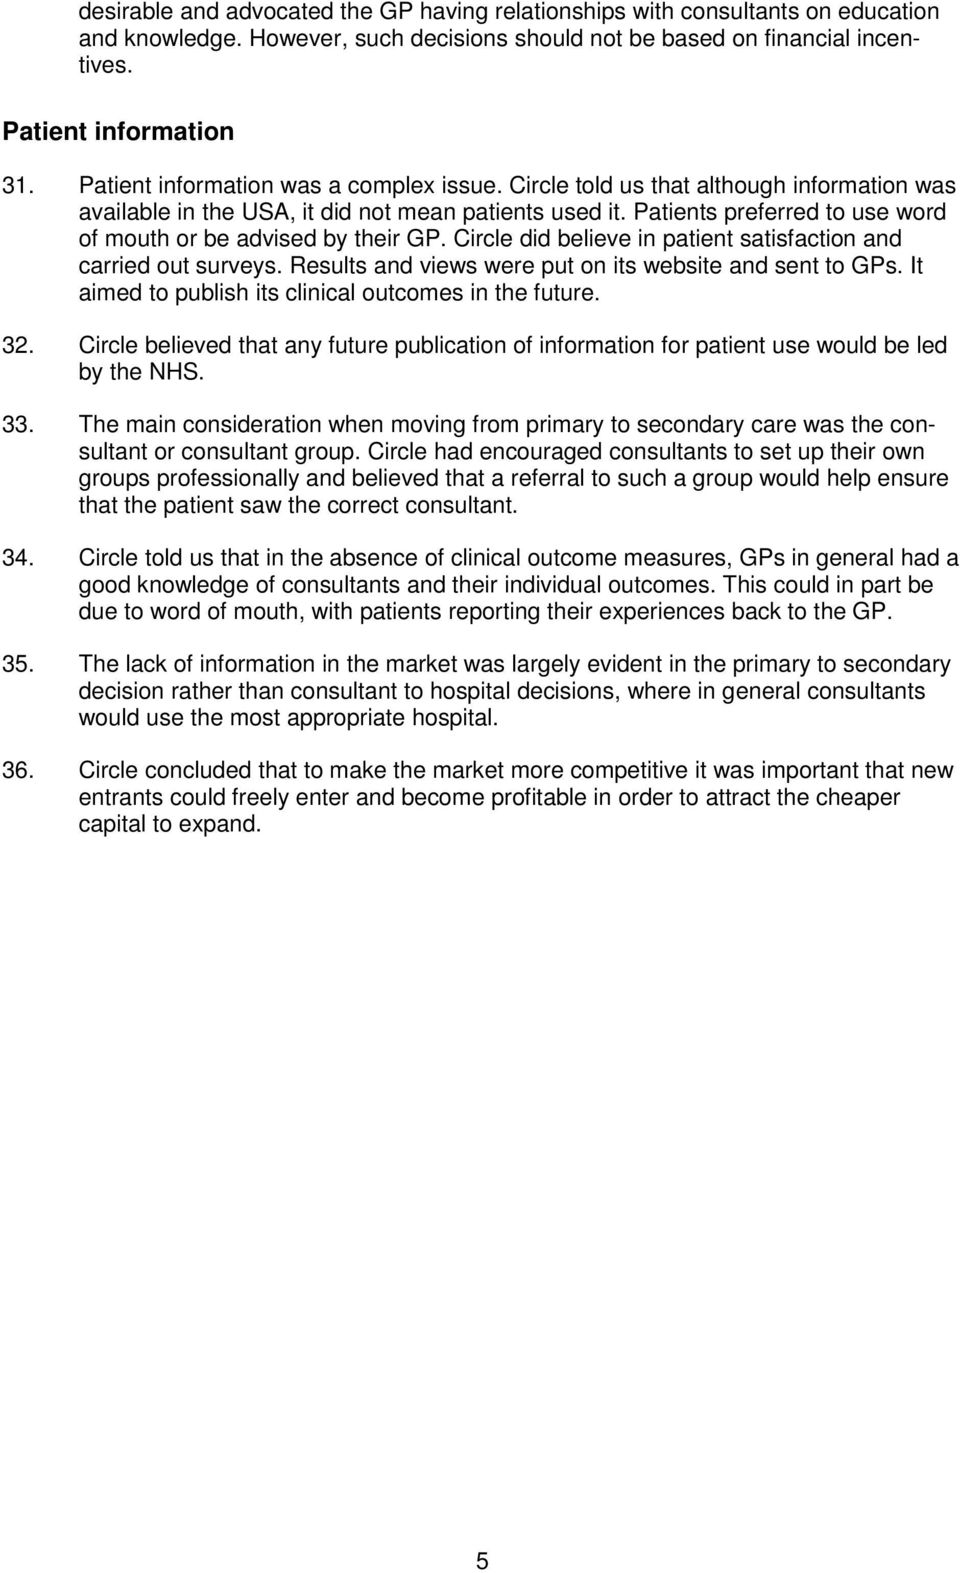 Patients preferred to use word of mouth or be advised by their GP. Circle did believe in patient satisfaction and carried out surveys. Results and views were put on its website and sent to GPs.